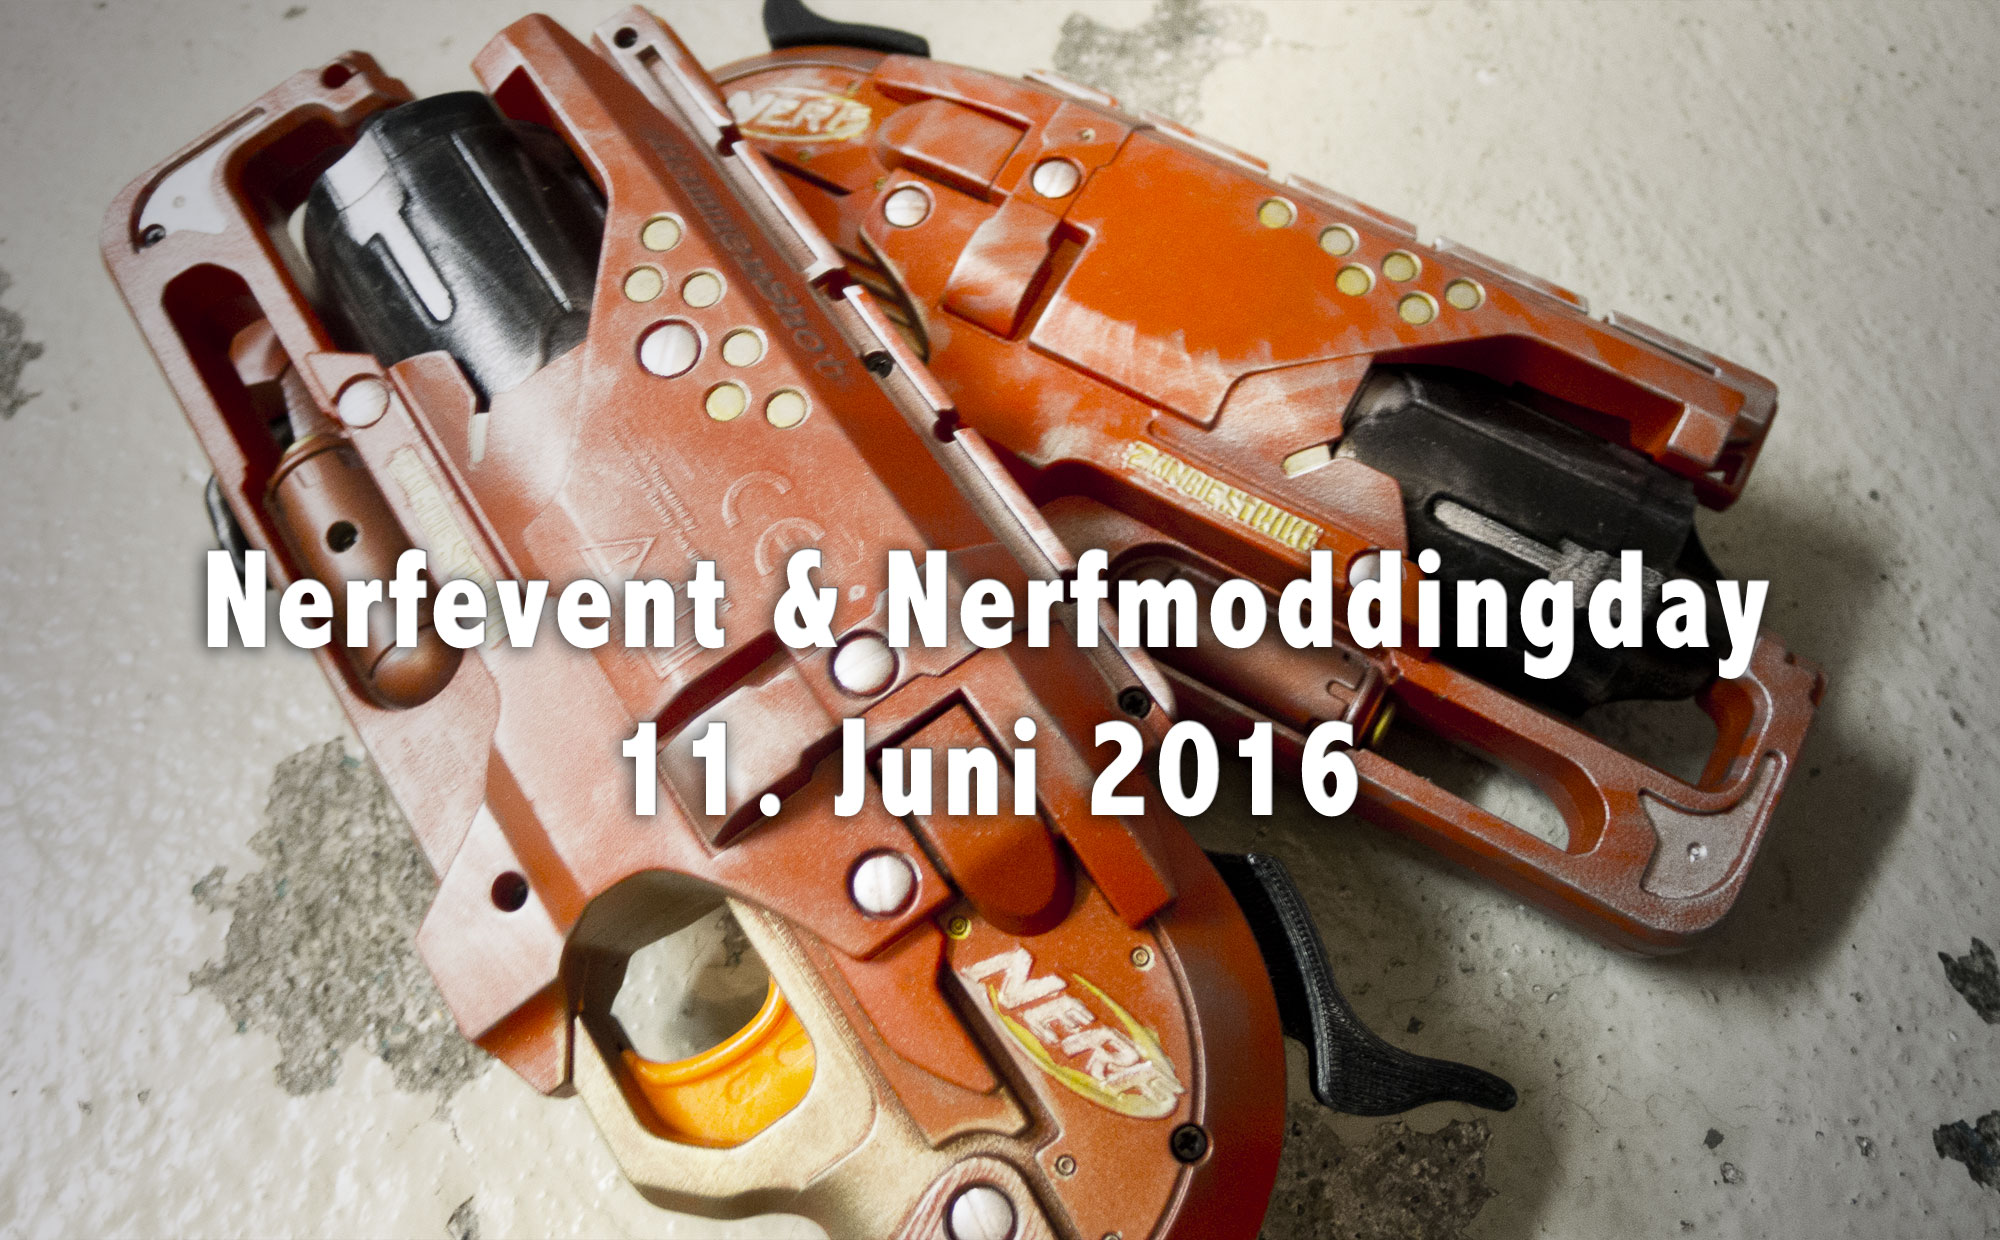 Nerfevent / Nerfturnier & Nerfmoddingday 11. Juni 2016